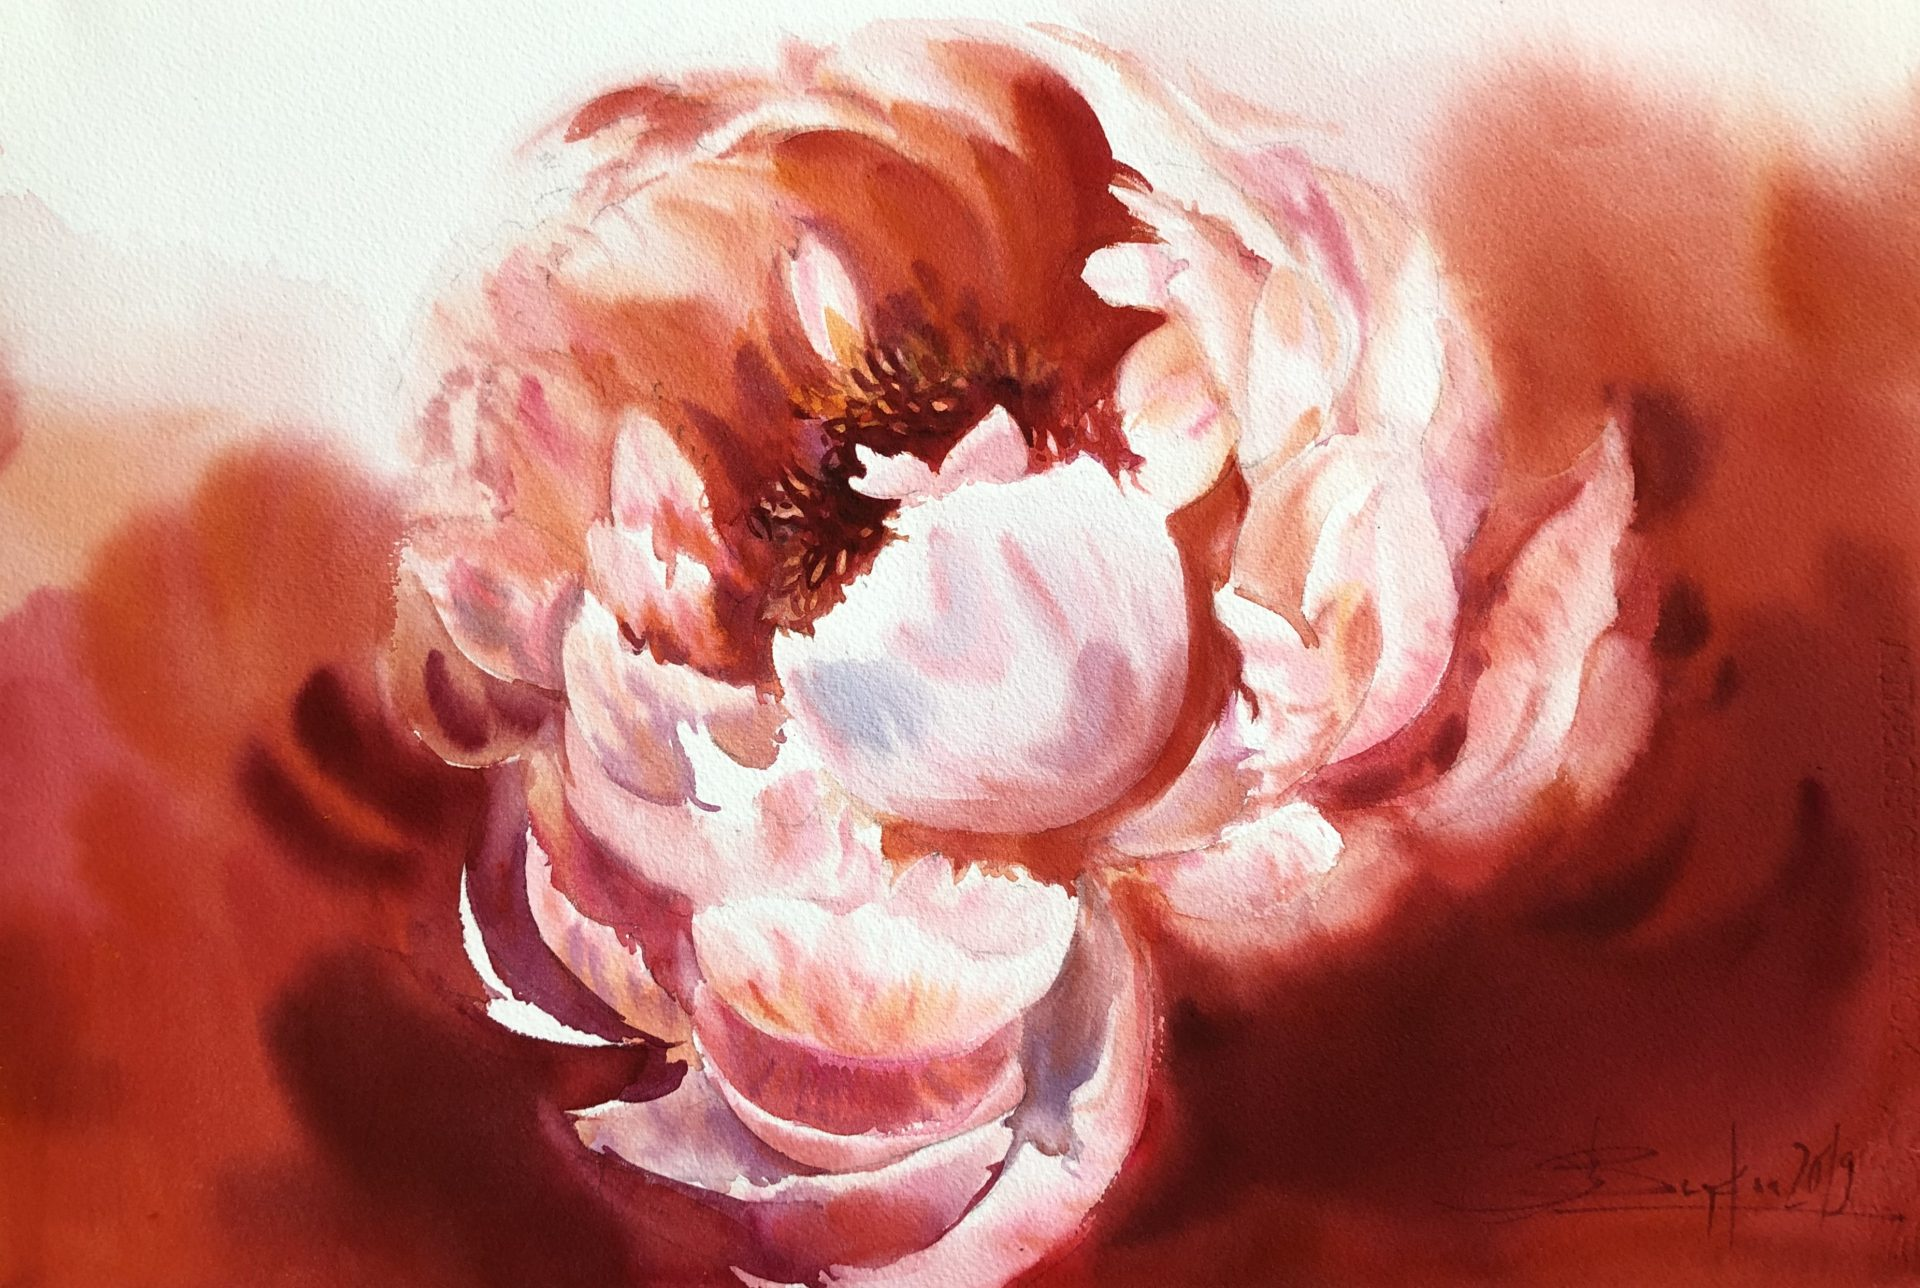 Red Illusion,Watercolour,56x38cm,Červená iluze